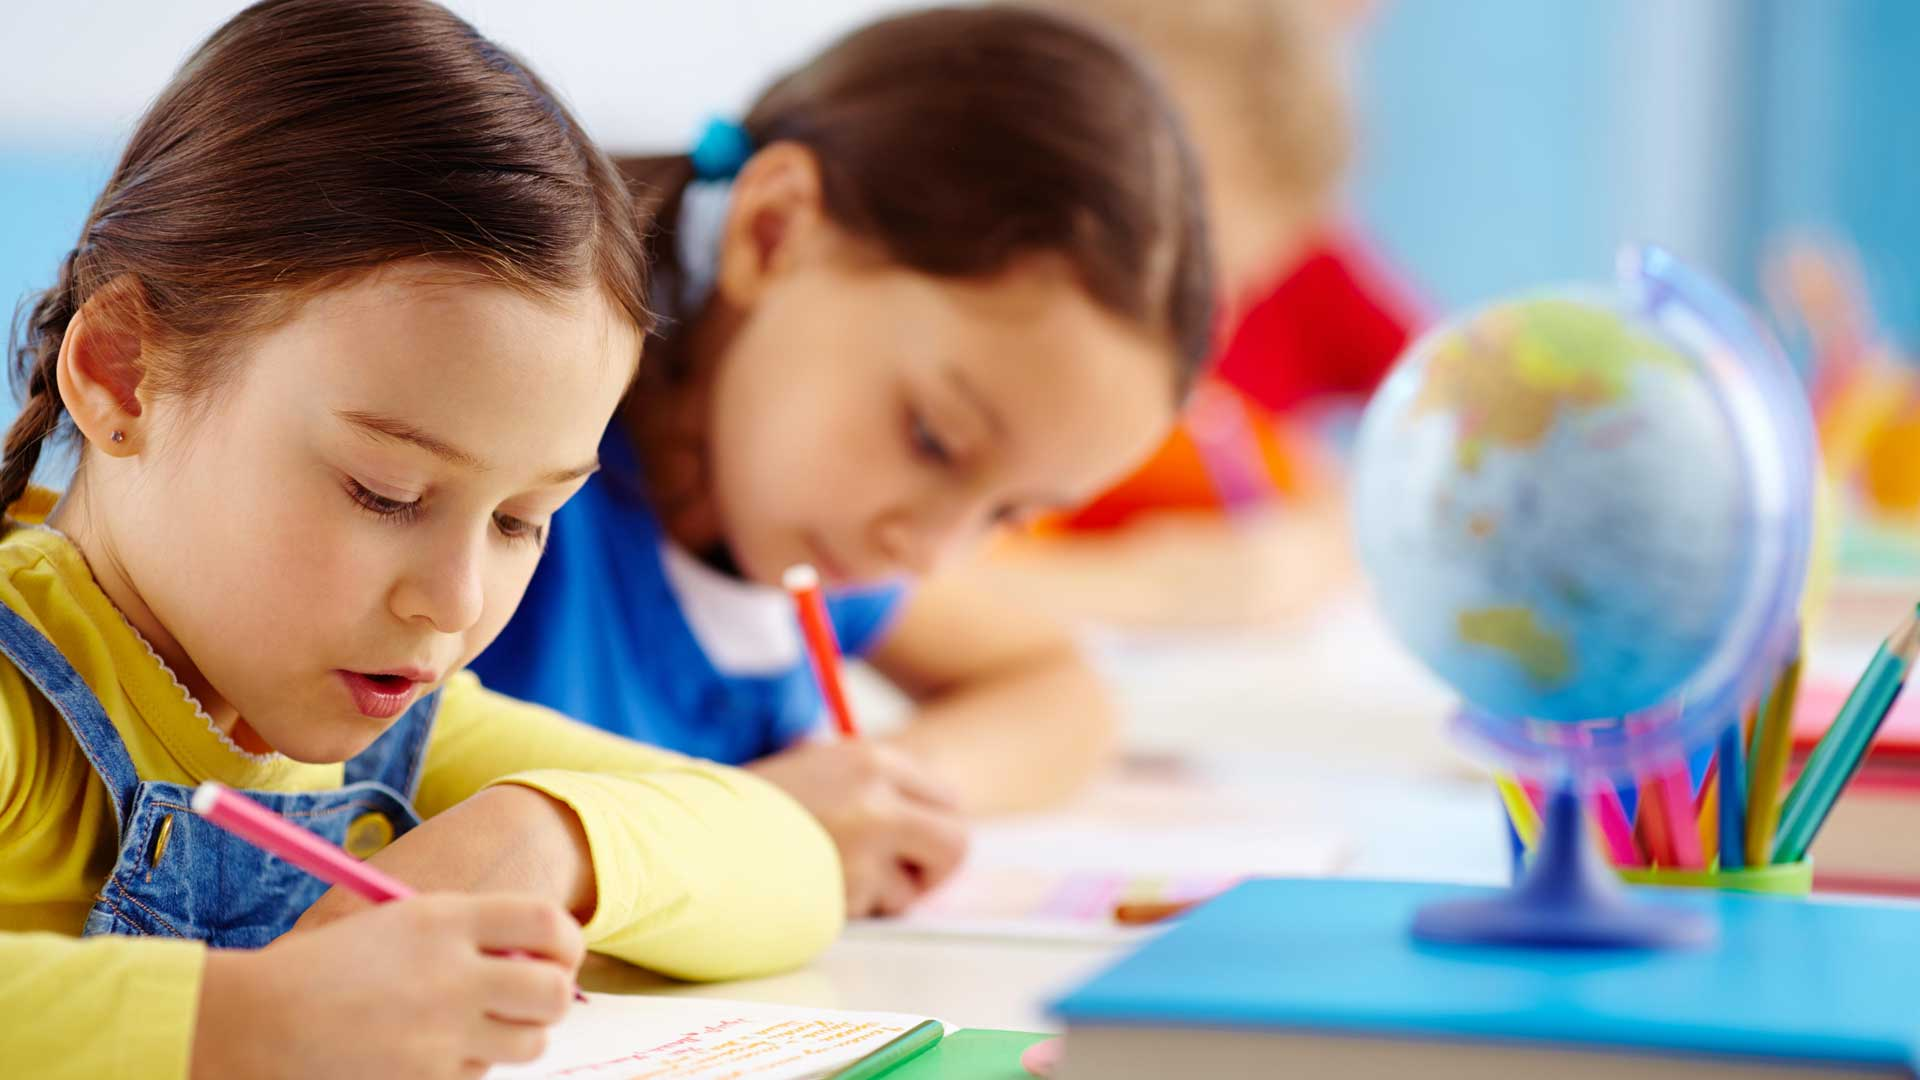 Helping kids stay on task with Preventive Teaching